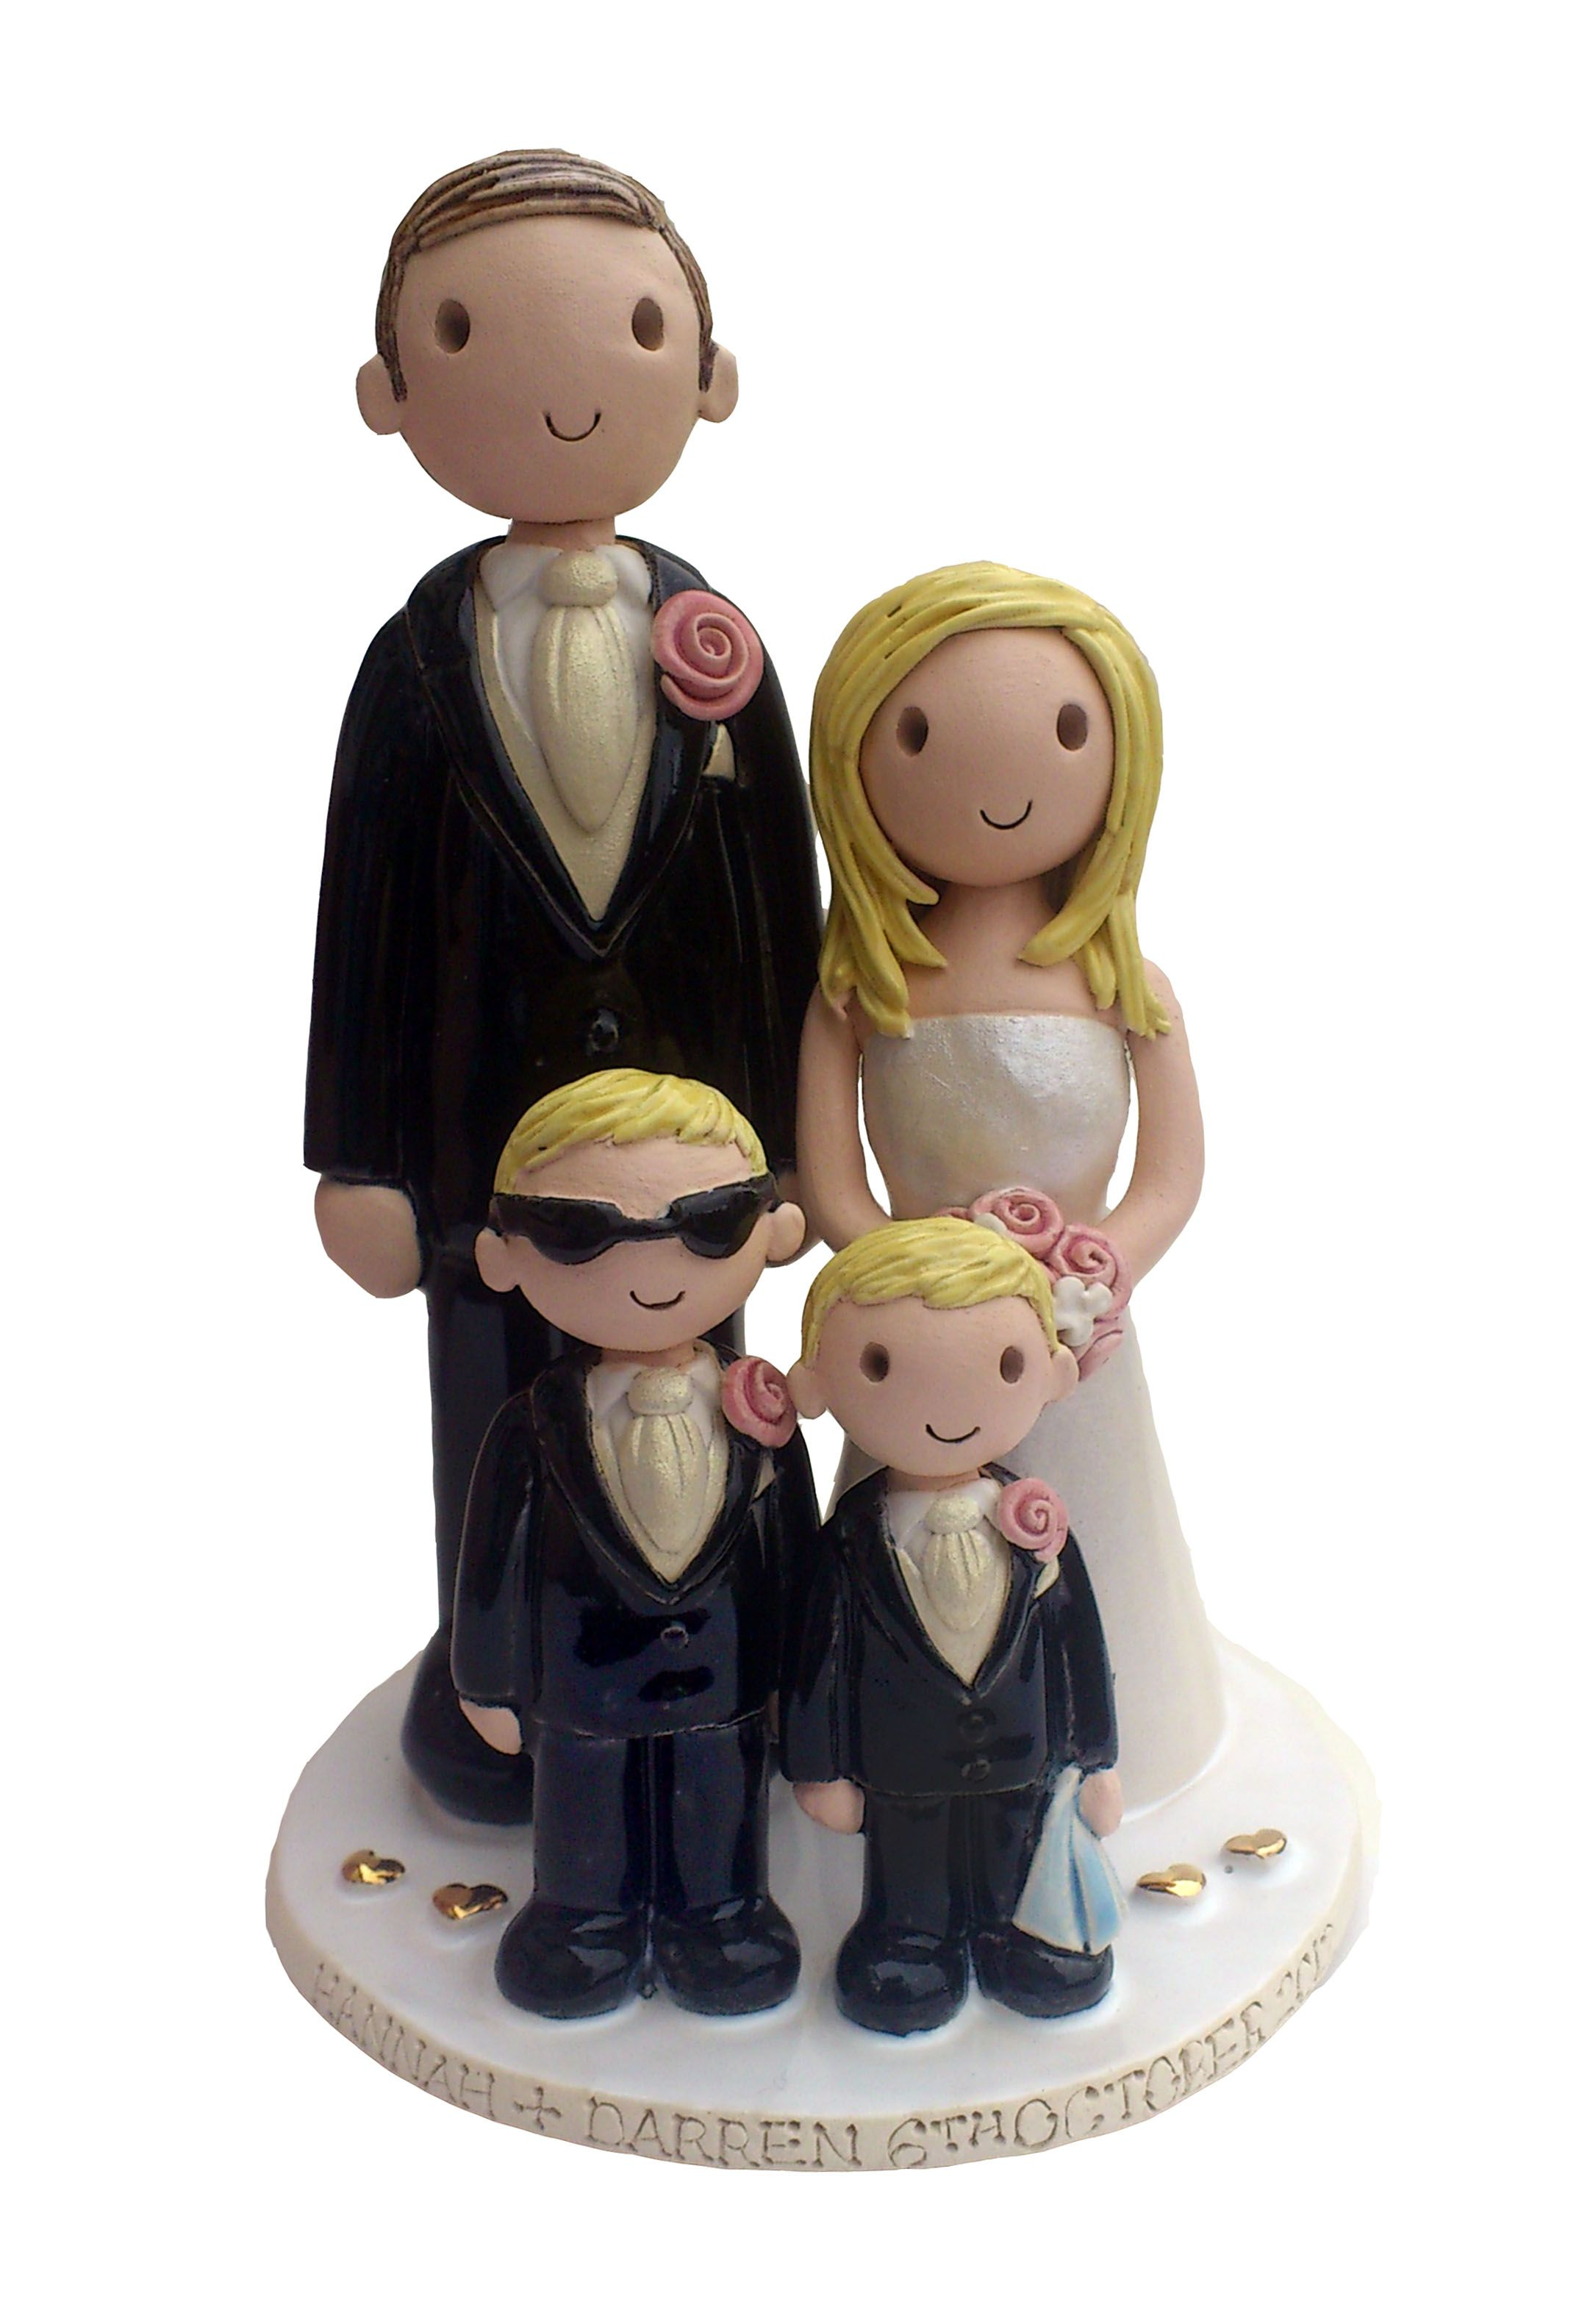 superhero family wedding cake topper family cake toppers can find superheroes wars etc 20603